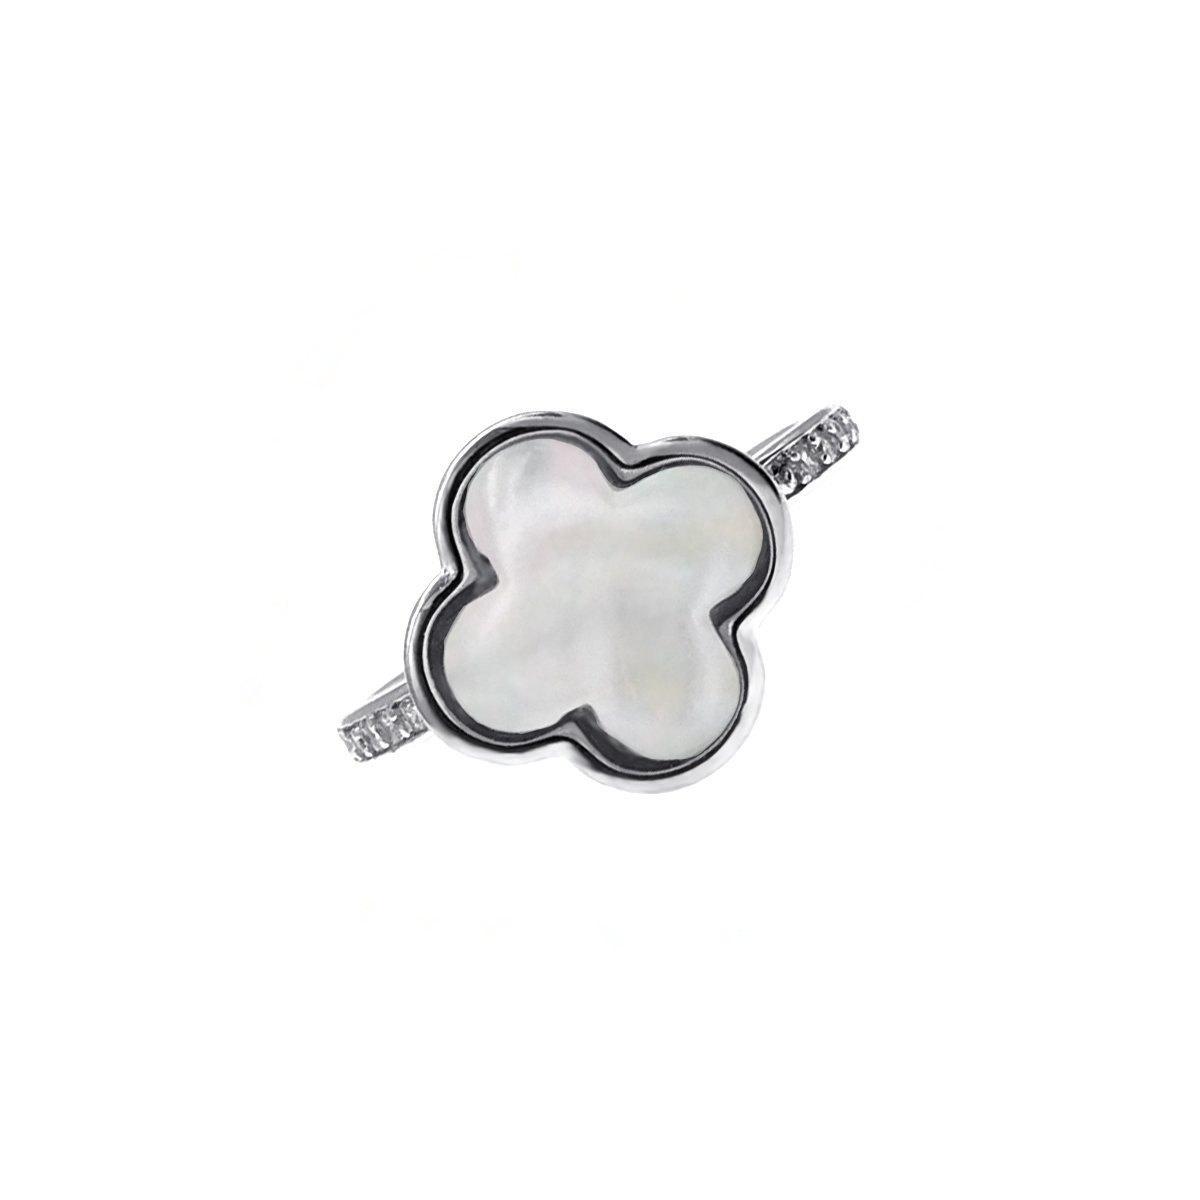 Clover Leaf- MOP with cz mounted 925 Silver Ring